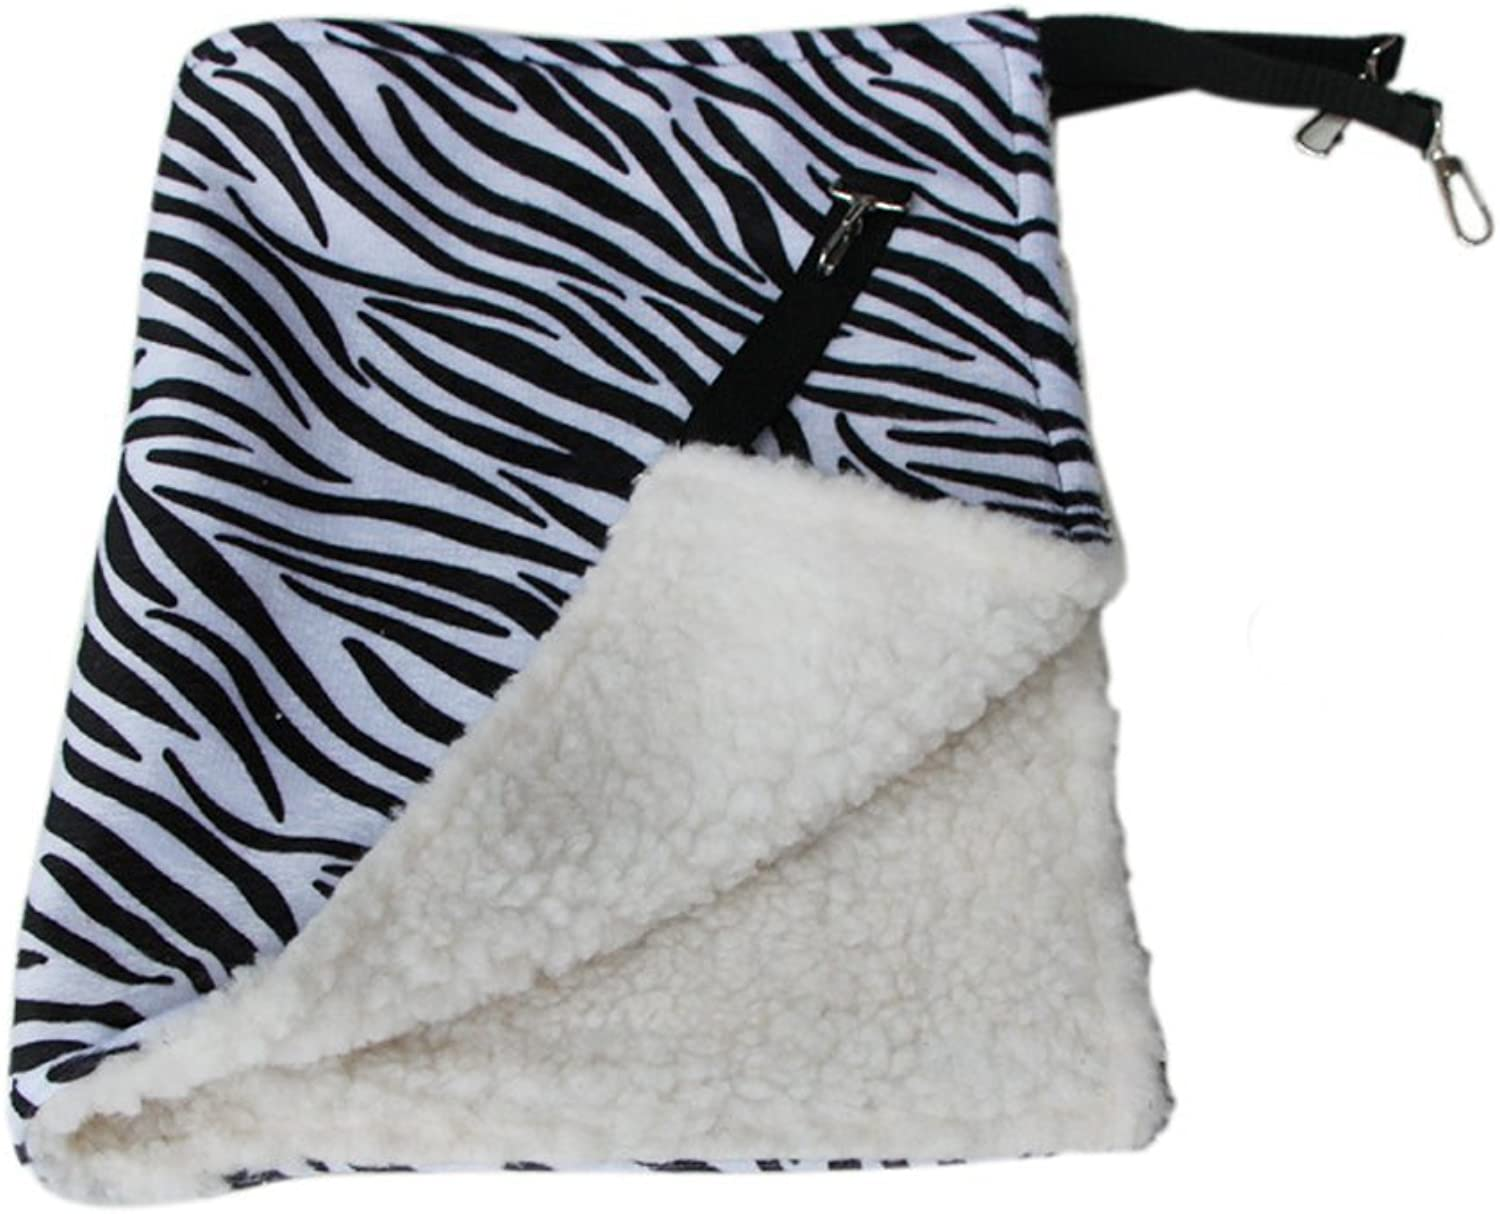 Fashion and Unique Comfortable Warm Pet Cat Kitty Cage Hanging Bed Hammock Blanket Cat Winter Supplies (35 x 35cm, ZebraStripe)